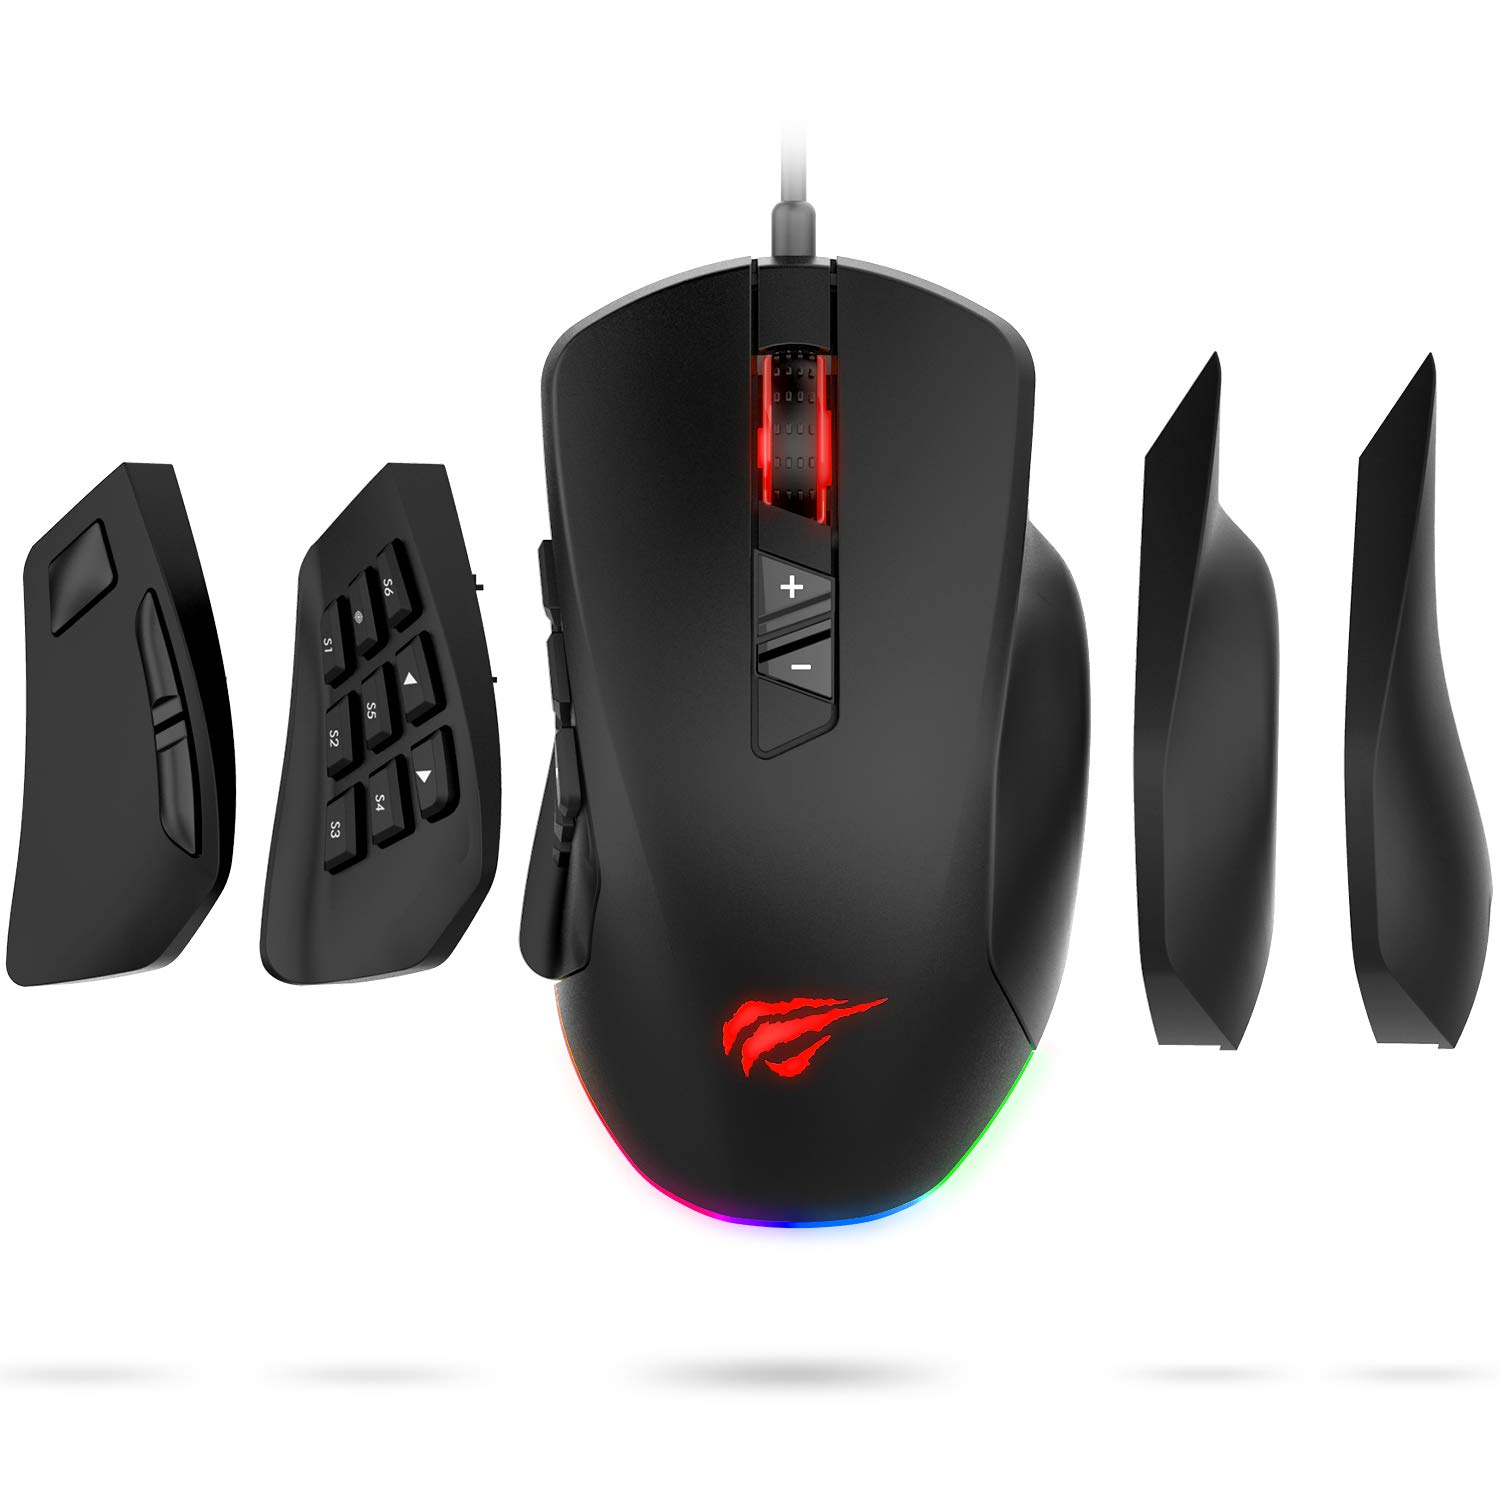 Havit Gaming Mouse 12000 DPI Computer Ergonomic Wired Mice with 14 Programmable Buttons Interchangeable Side Plates 8 Buttons 8 6 Side Buttons , 2 Replaceable Right Plates for Laptop PC Gamer